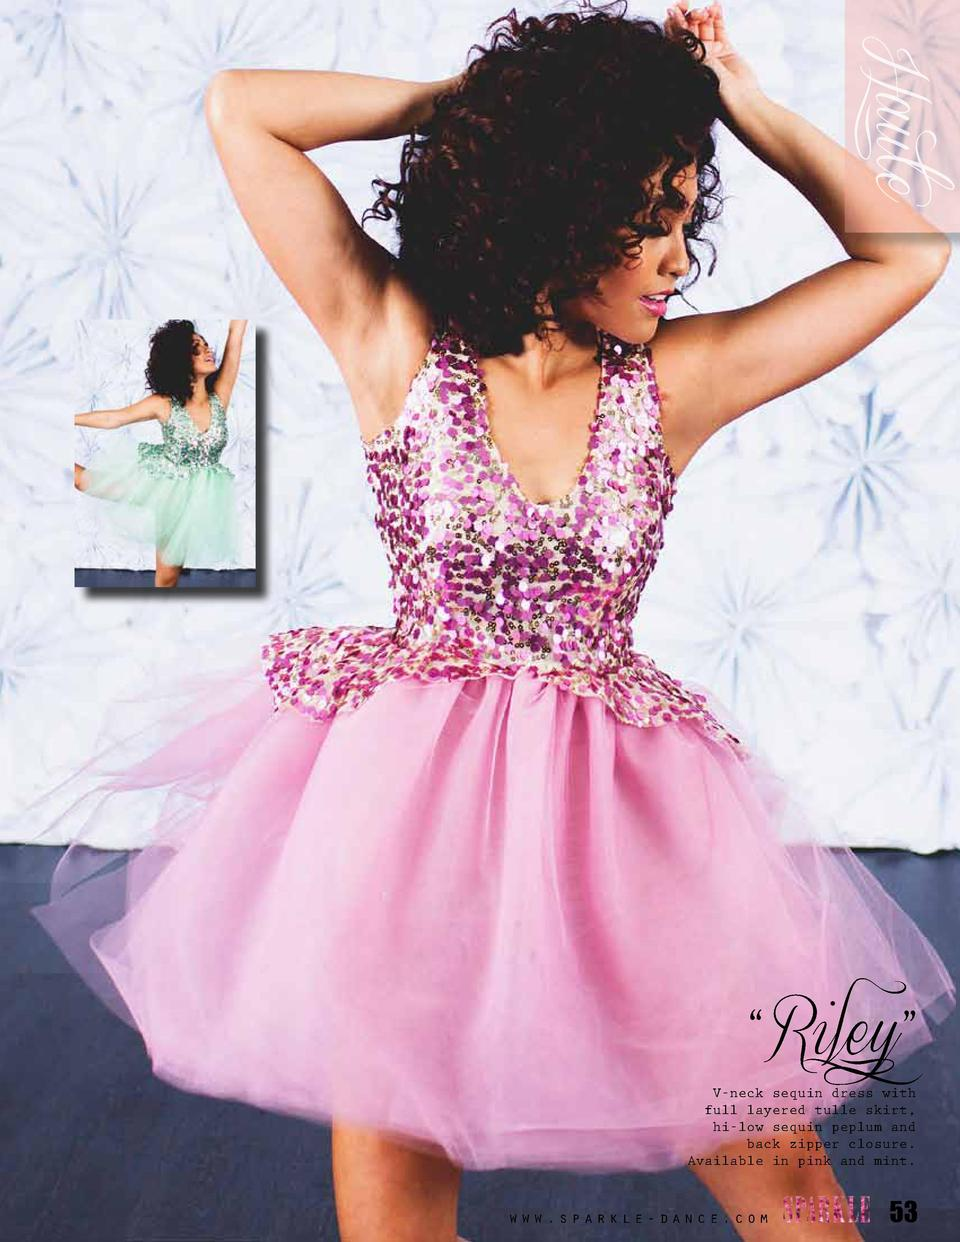 Haute    Riley     V-neck sequin dress with full layered tulle skirt, hi-low sequin peplum and back zipper closure. Availa...